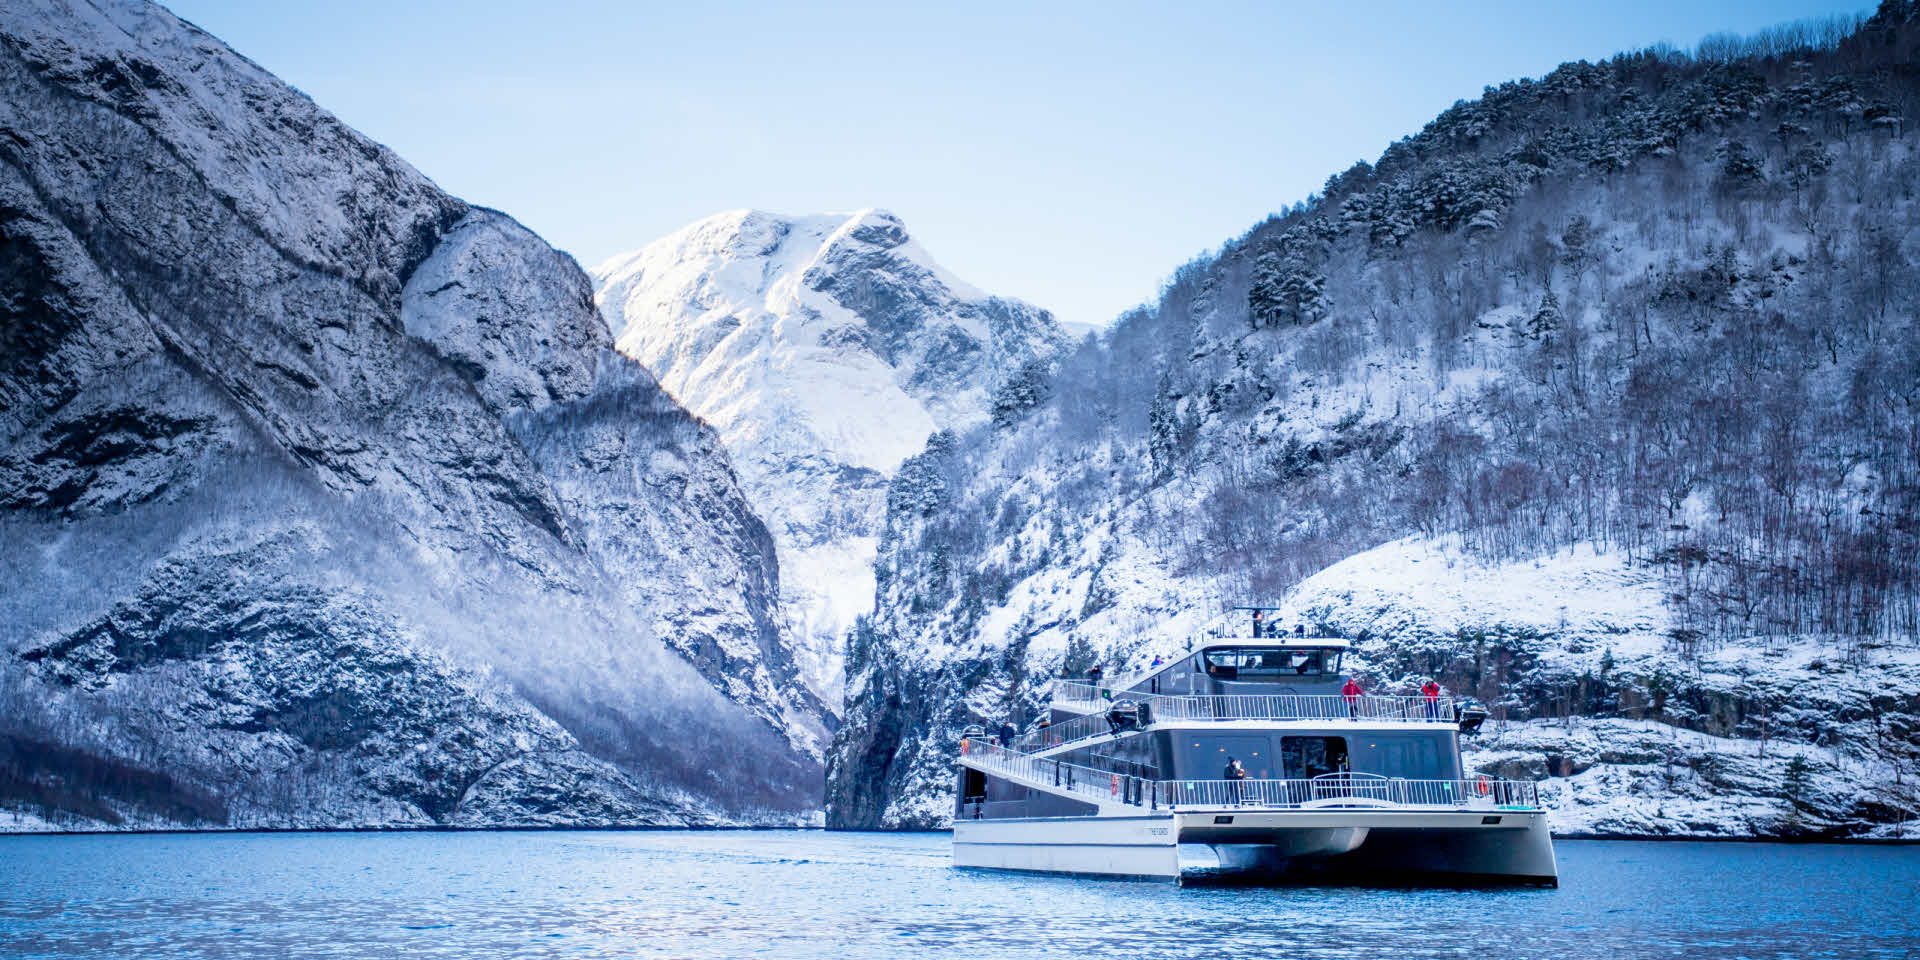 Electric tourist catamaran sailing on the Nærøyfjord surrounded by snow covered mountains.